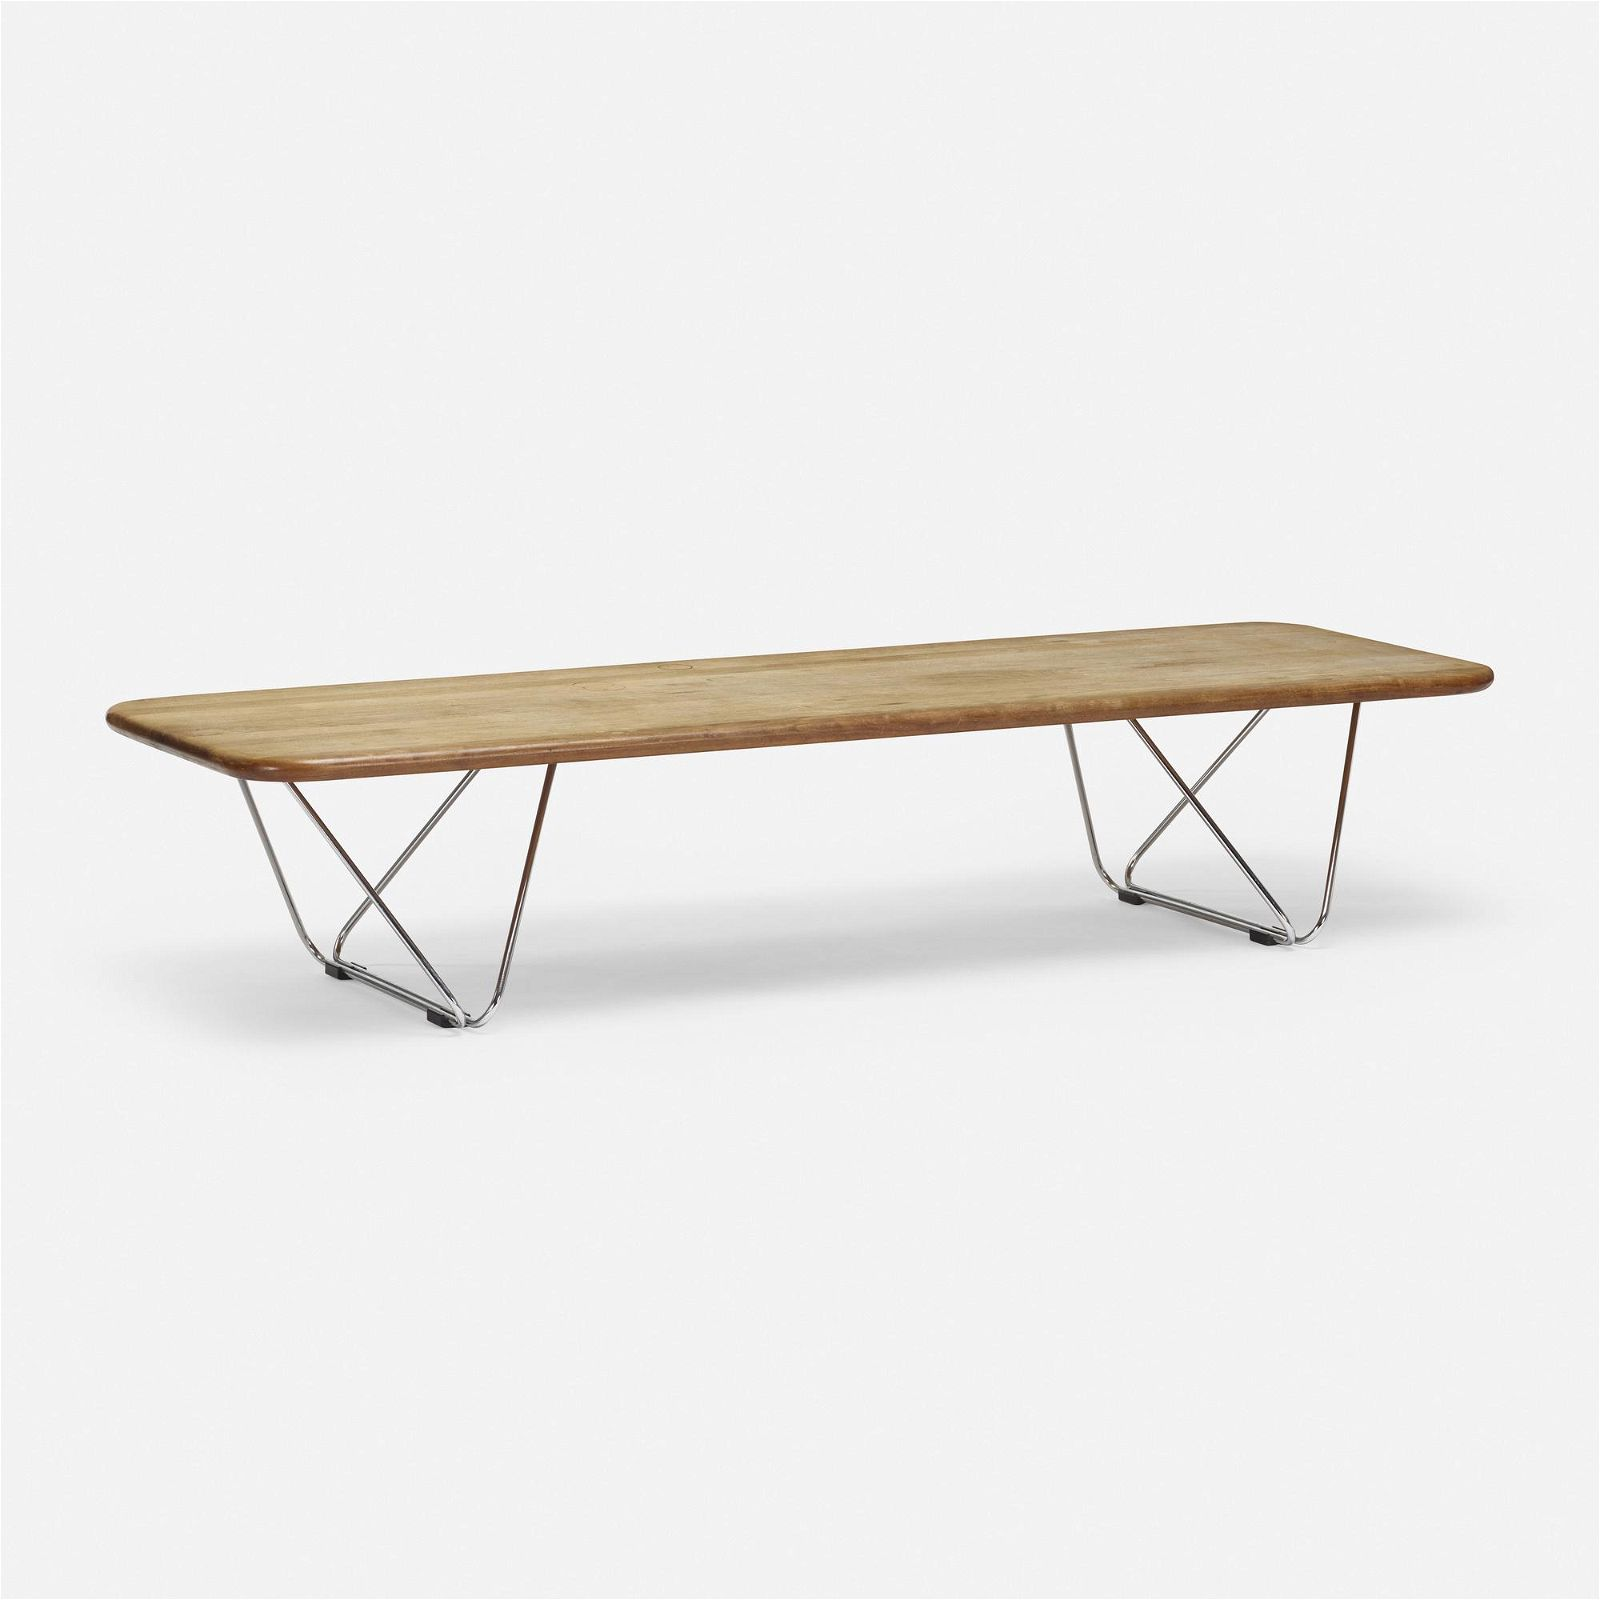 Ray Wilkes, Coffee table